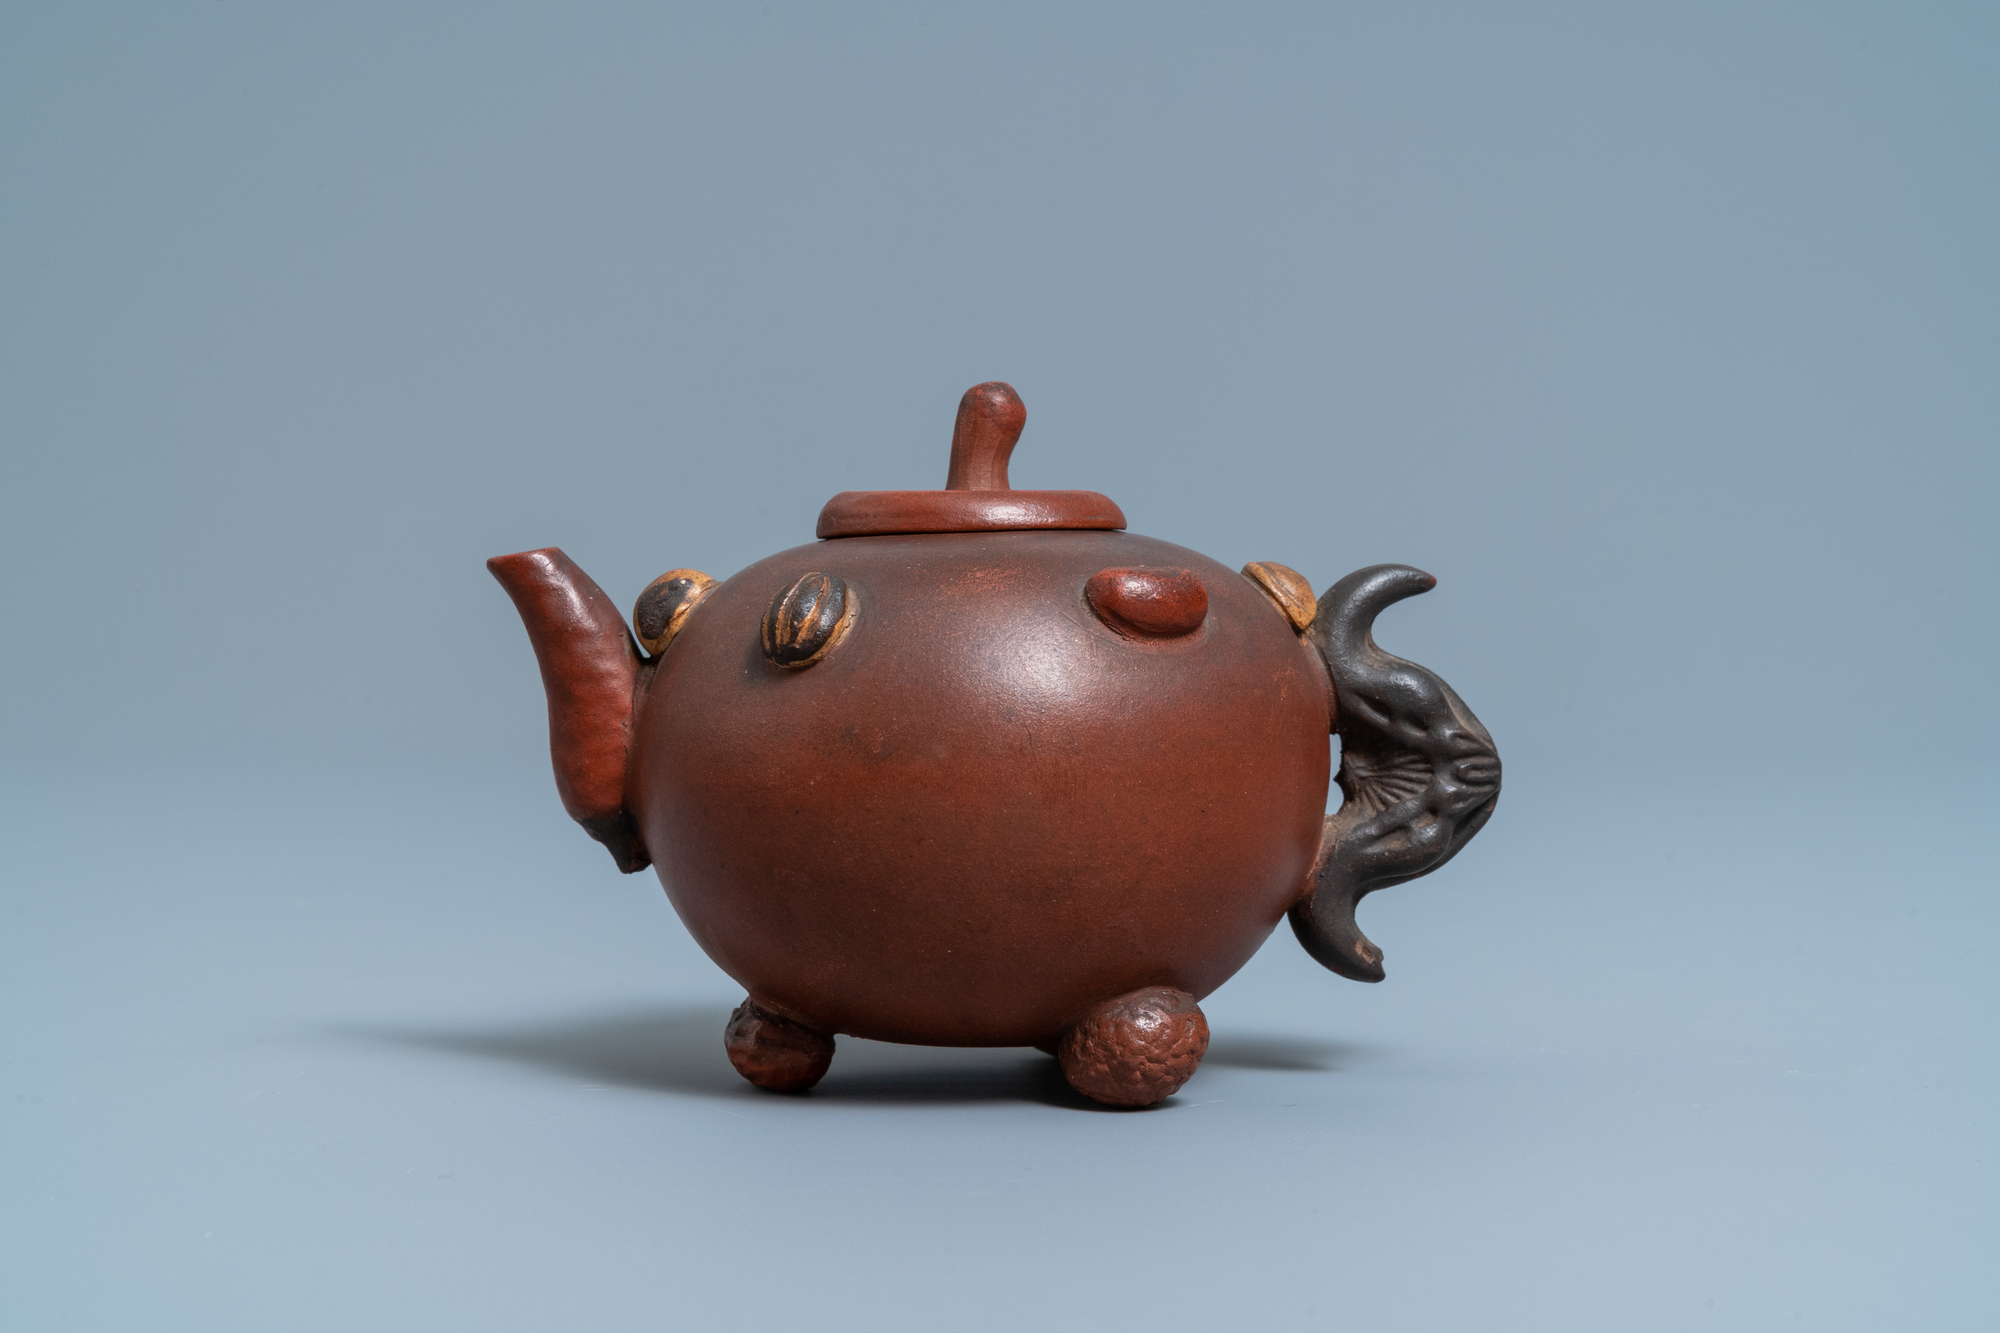 A Chinese Yixing stoneware teapot and cover with applied nuts, 19/20th C. - Image 2 of 7